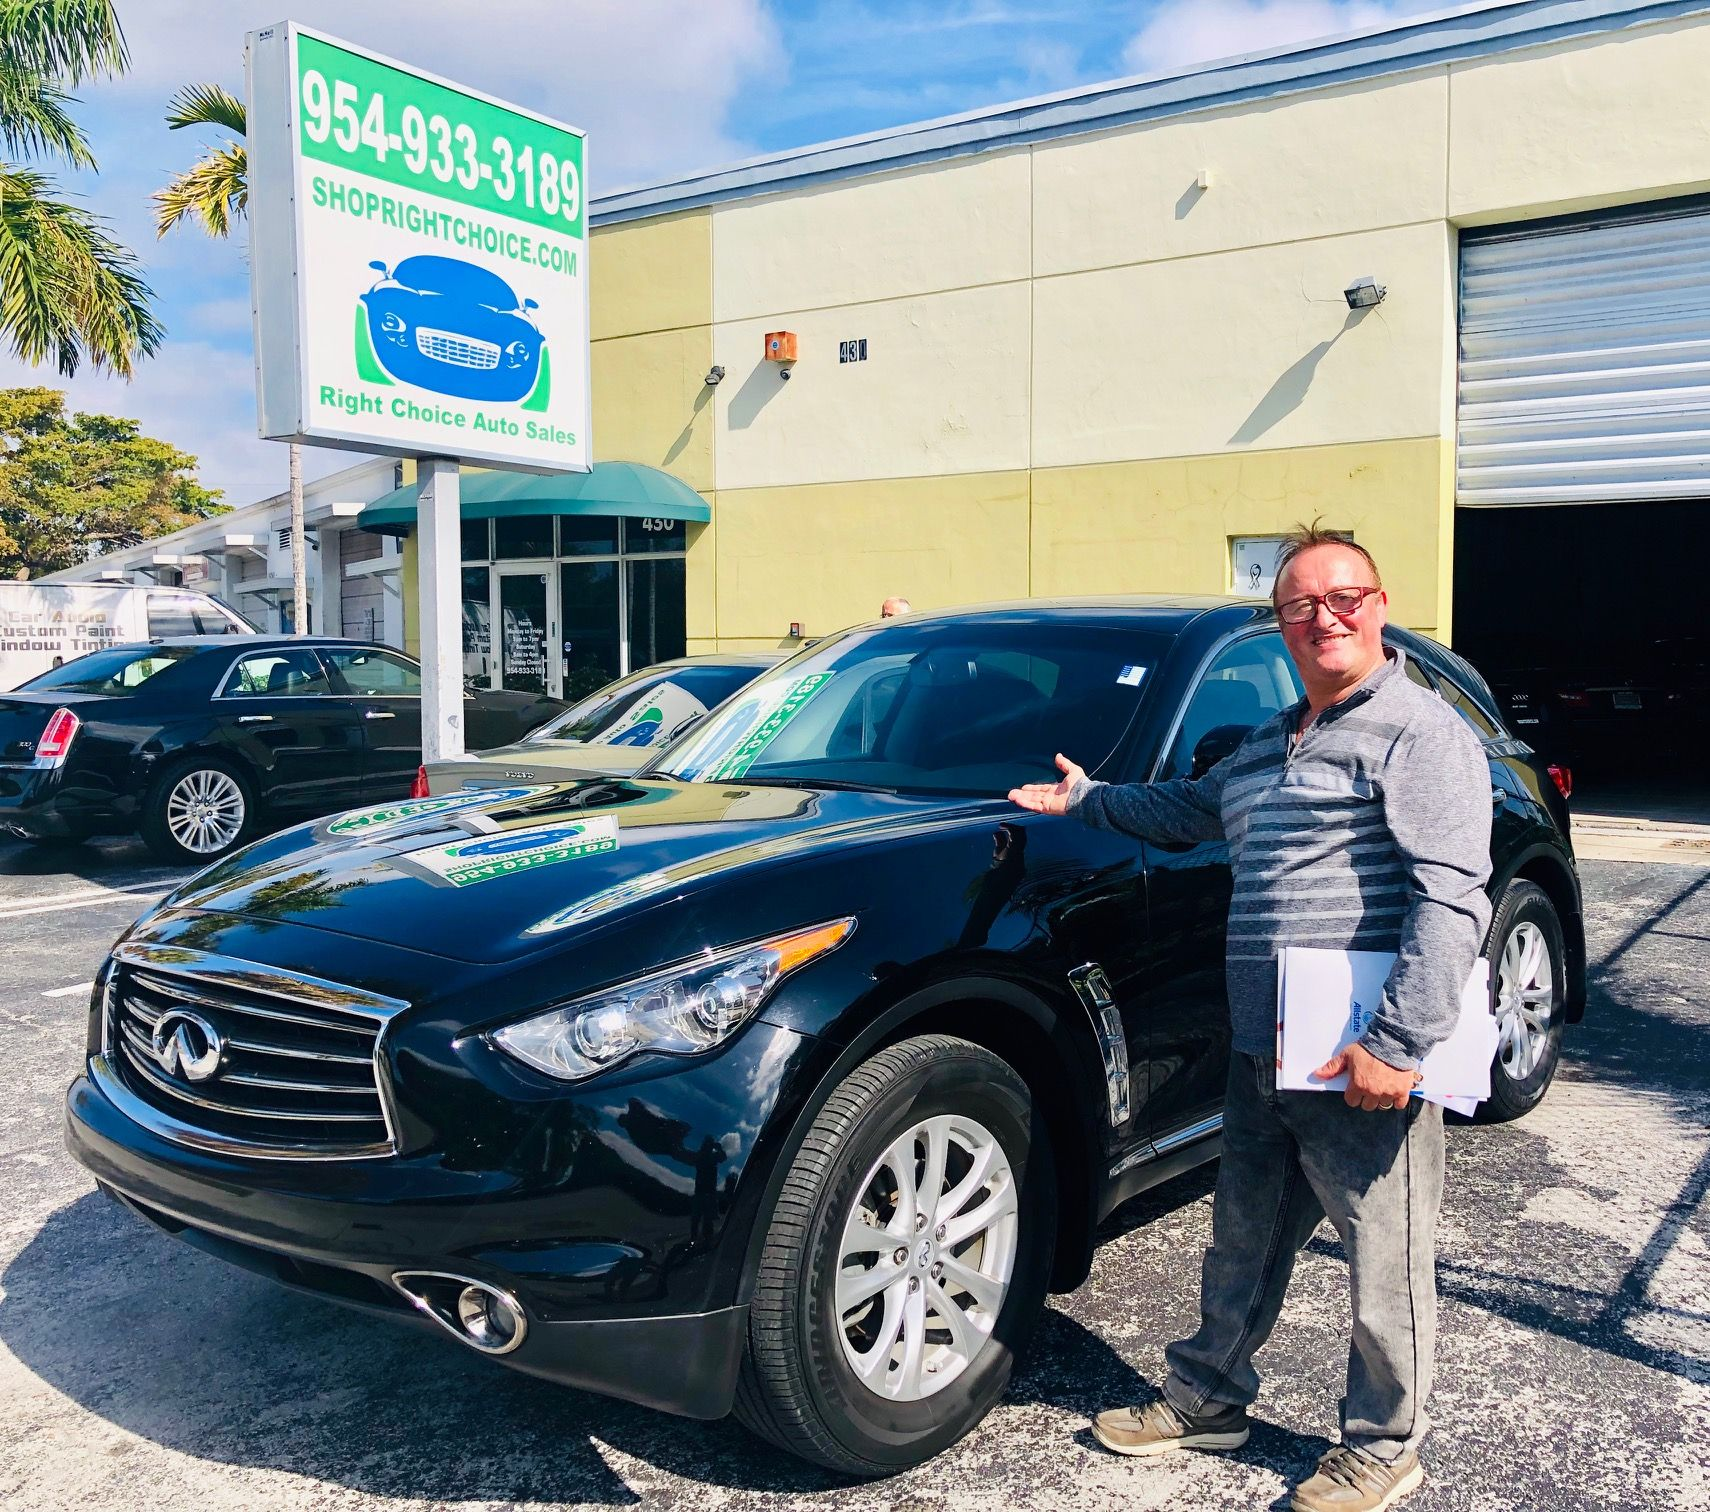 Petro Drove Down From Jacksonville Fl With A Friend And Saved 3 540 On This Like New 2013 Infiniti Fx37 Shoprightc Buy Used Cars Used Luxury Cars Used Cars